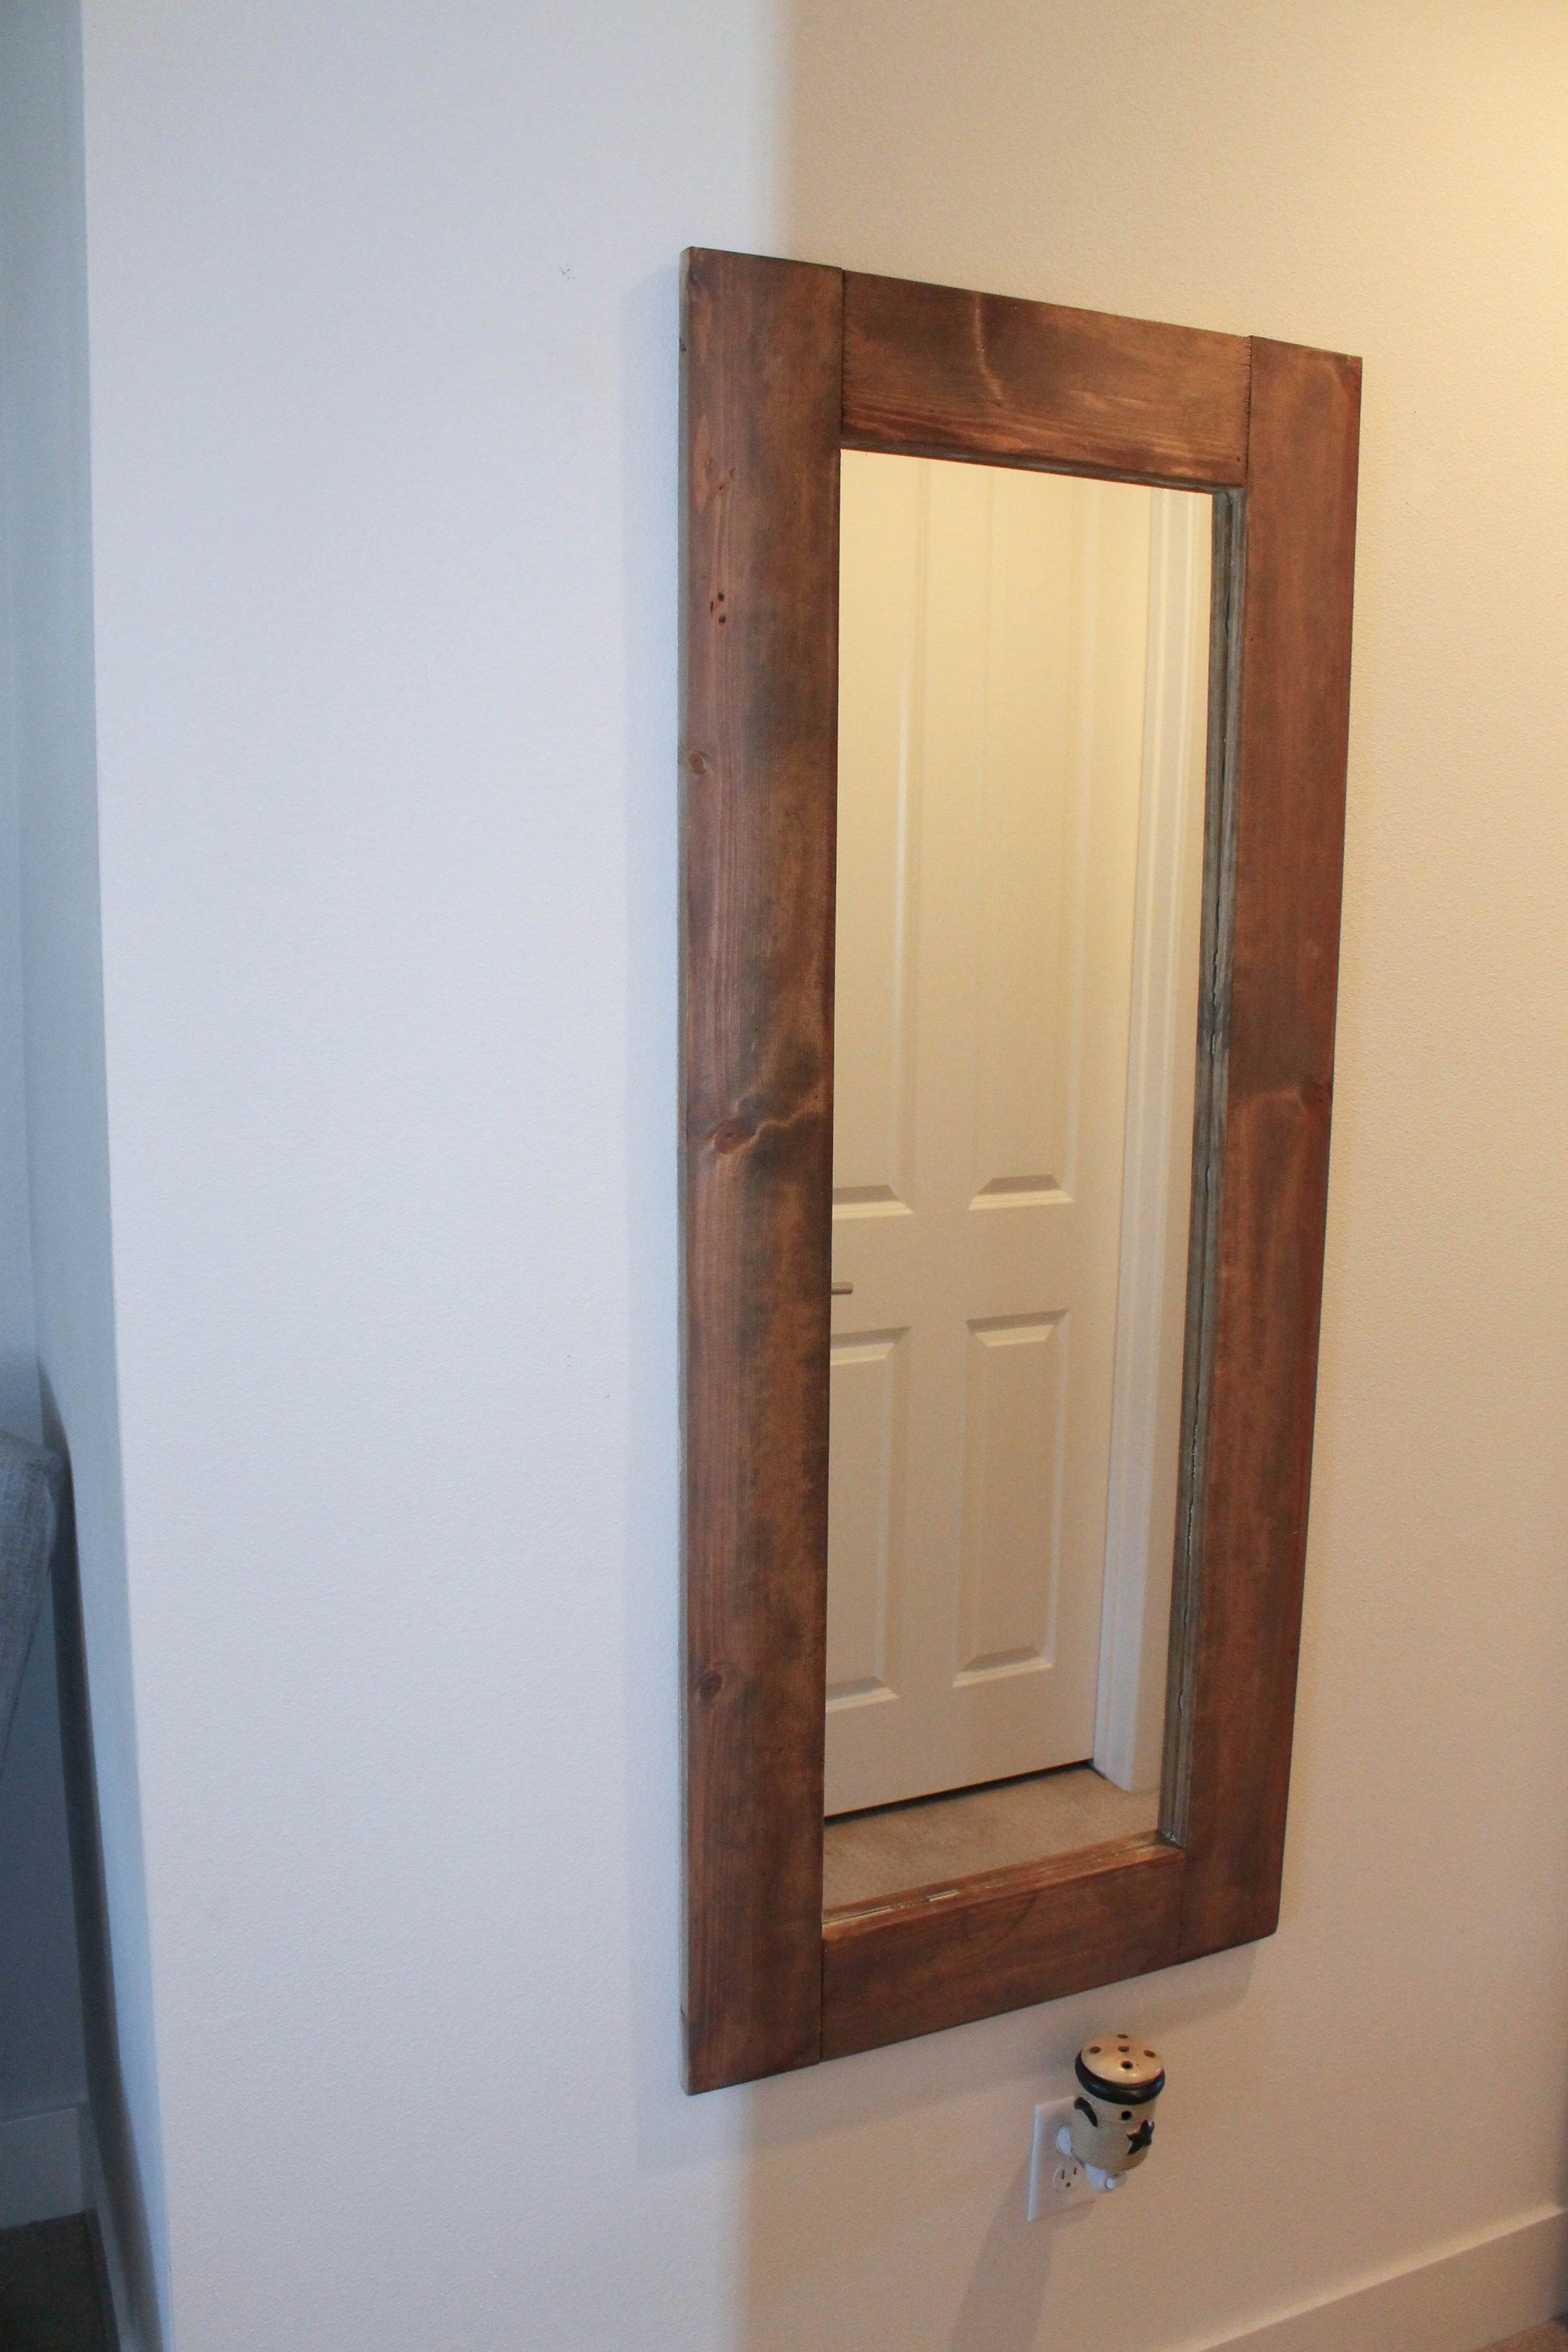 This past weekend my project was framing this super cheap IKEA ...